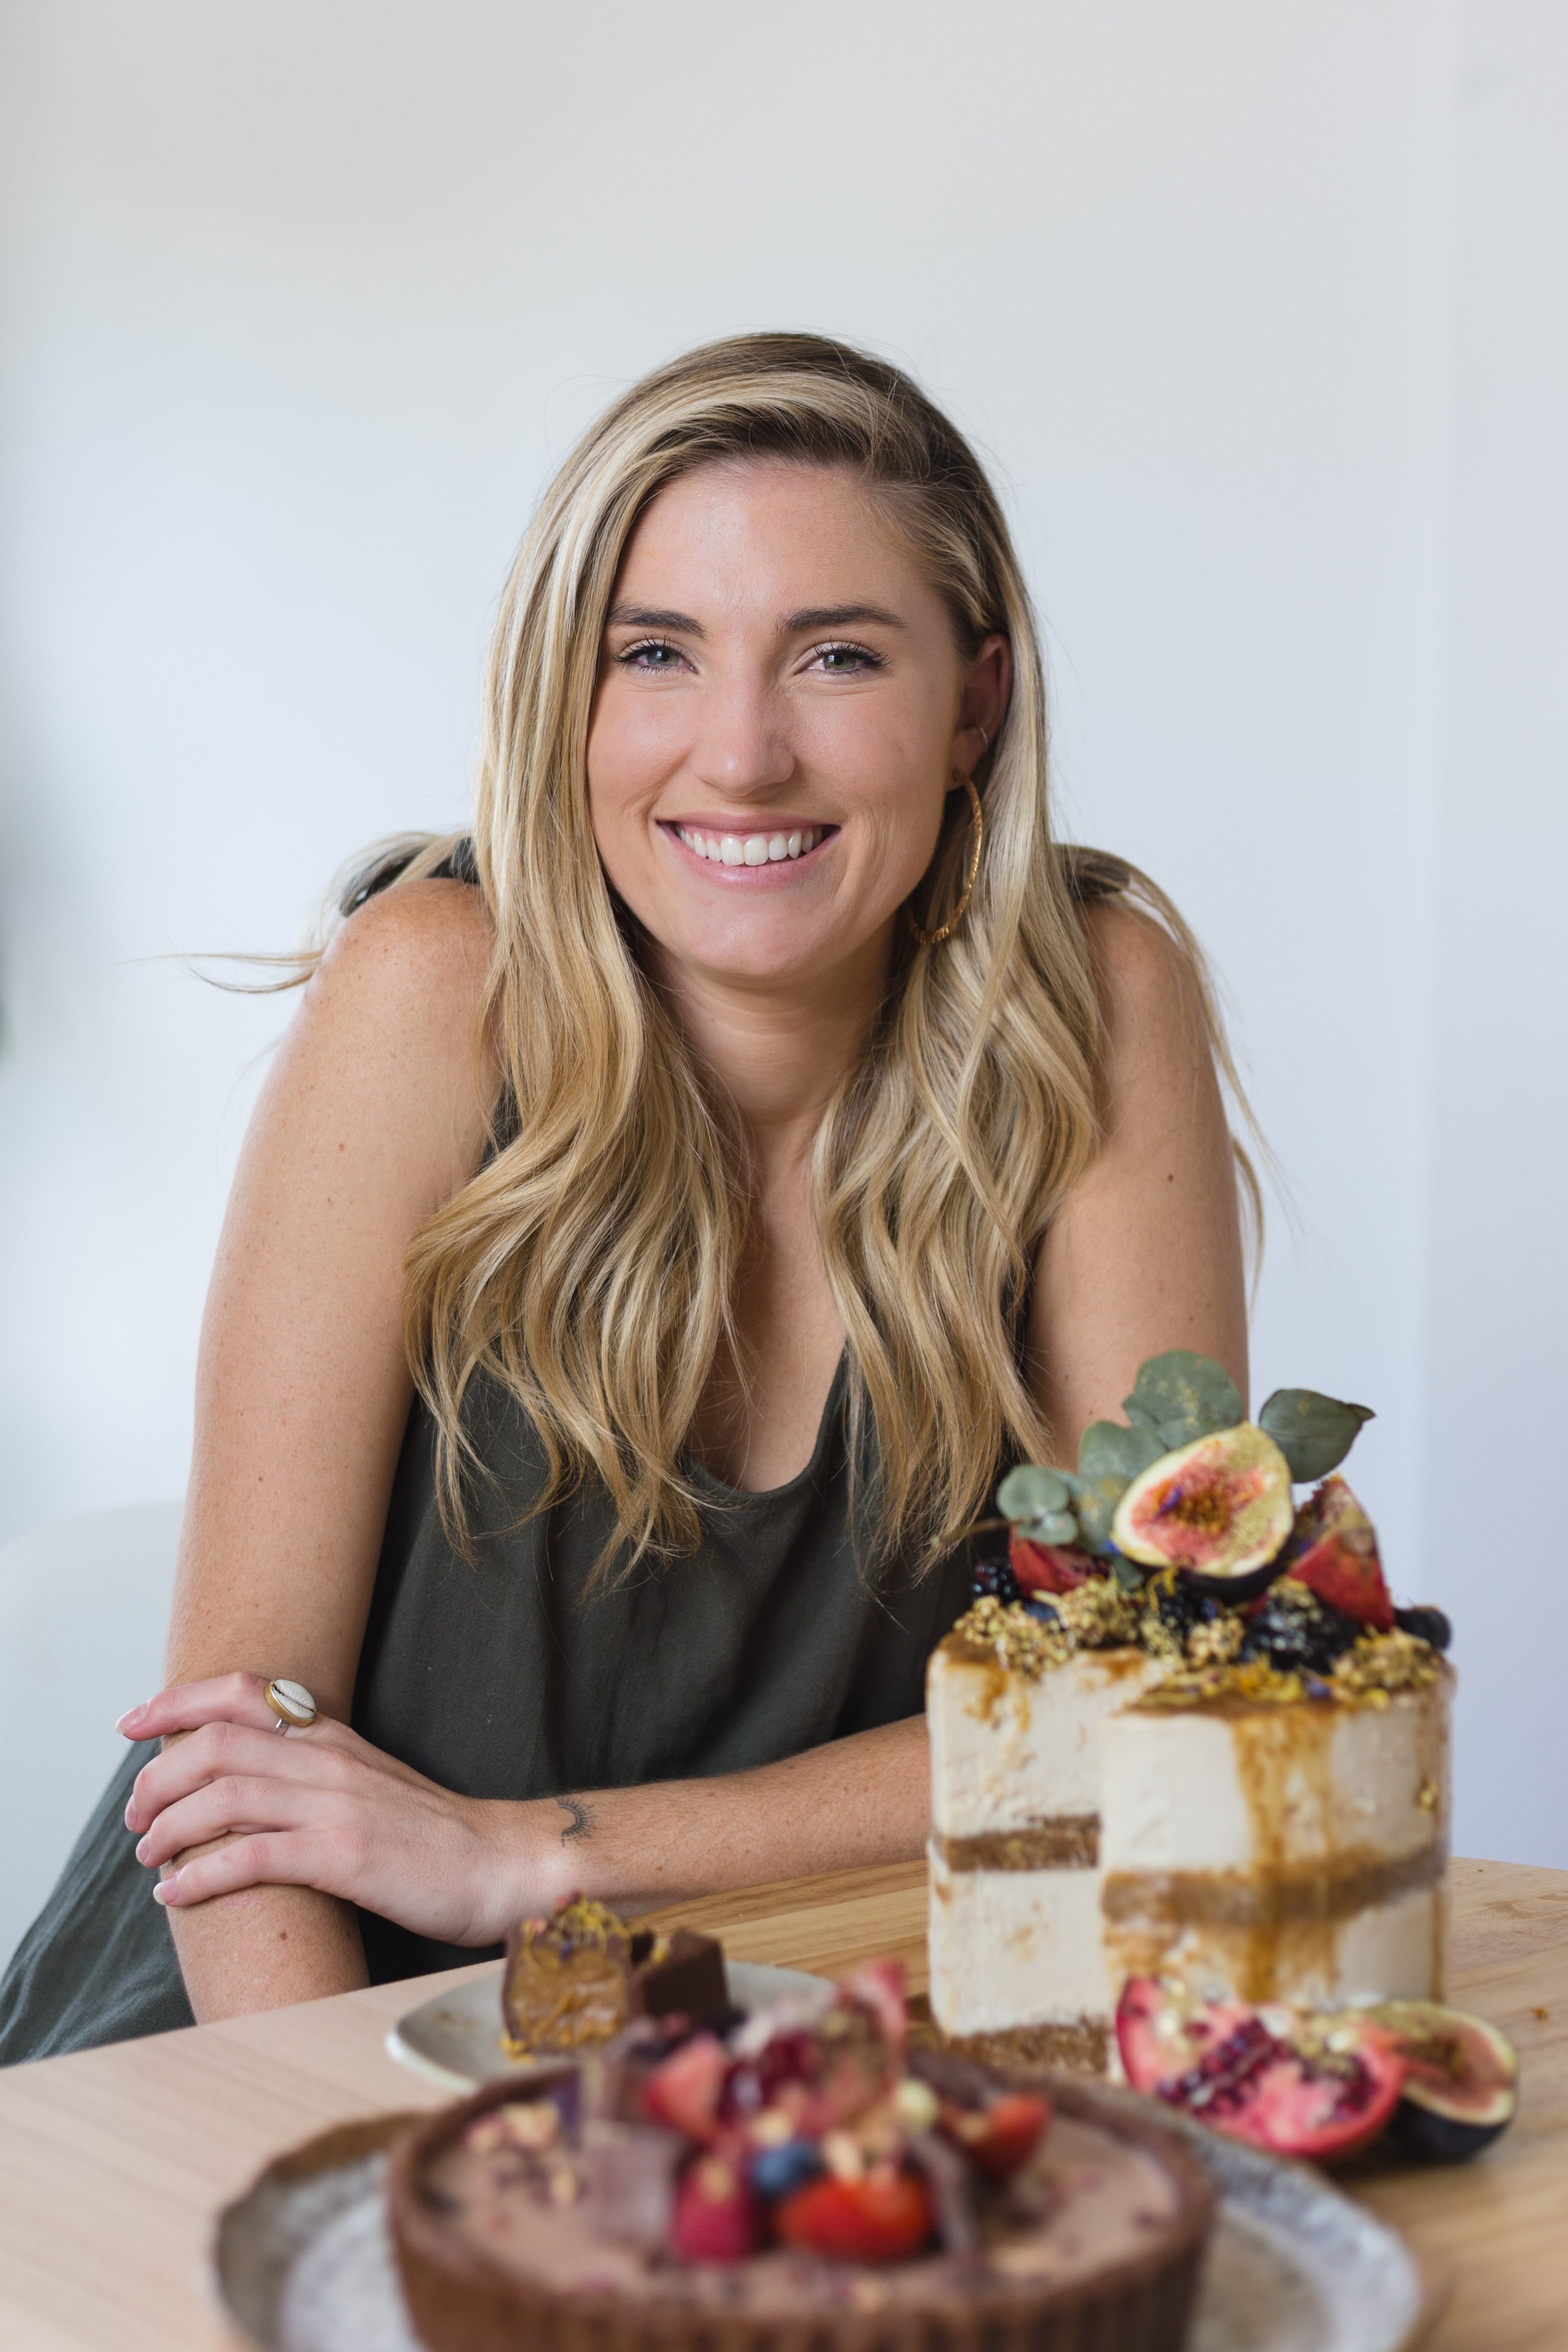 """The Kindness Echoes / Organic+ Vegan Desserts - Georgia Irwin has always been a creator, but after watching a pro-vegan documentary, she found a new art form in creating vegan treats that do good by our bodies and the environment.Here, she talks about her mission for spreading kindness, how she's healed through building a business, and why you don't need to follow the """"quit your job and go for it"""" type advice."""